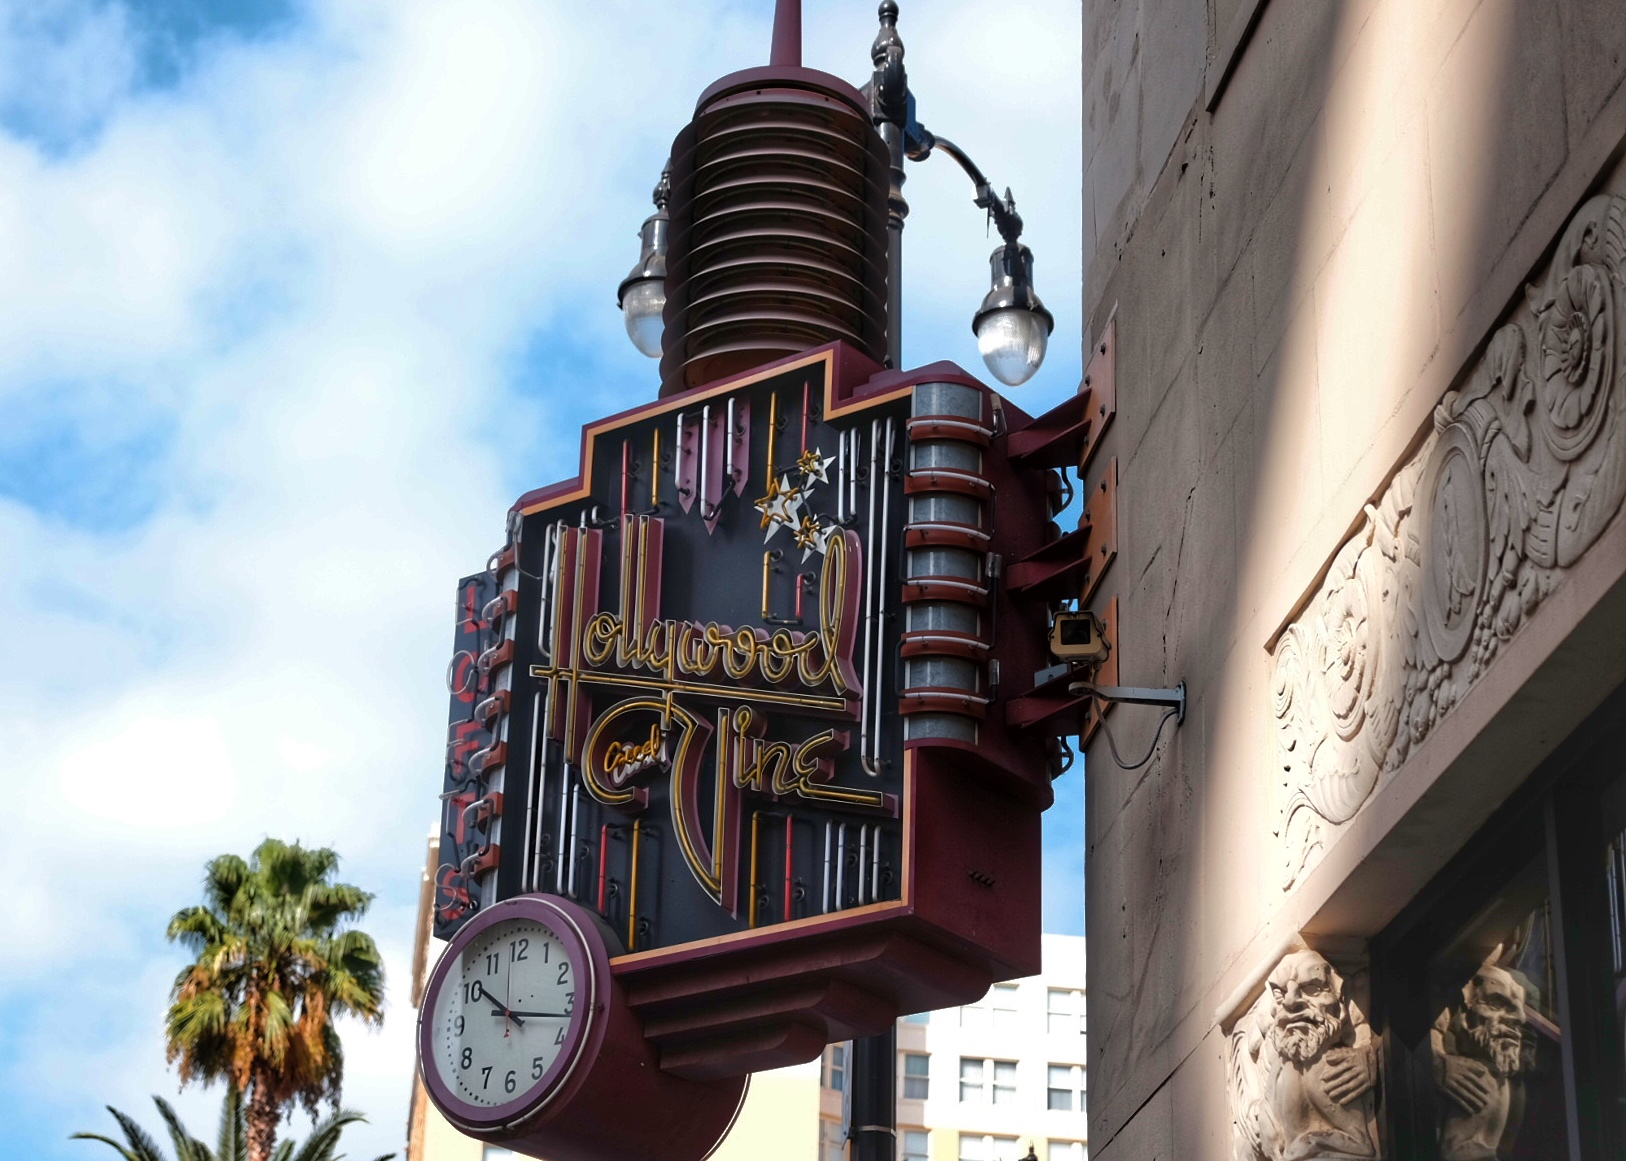 Hollywood and Vine.